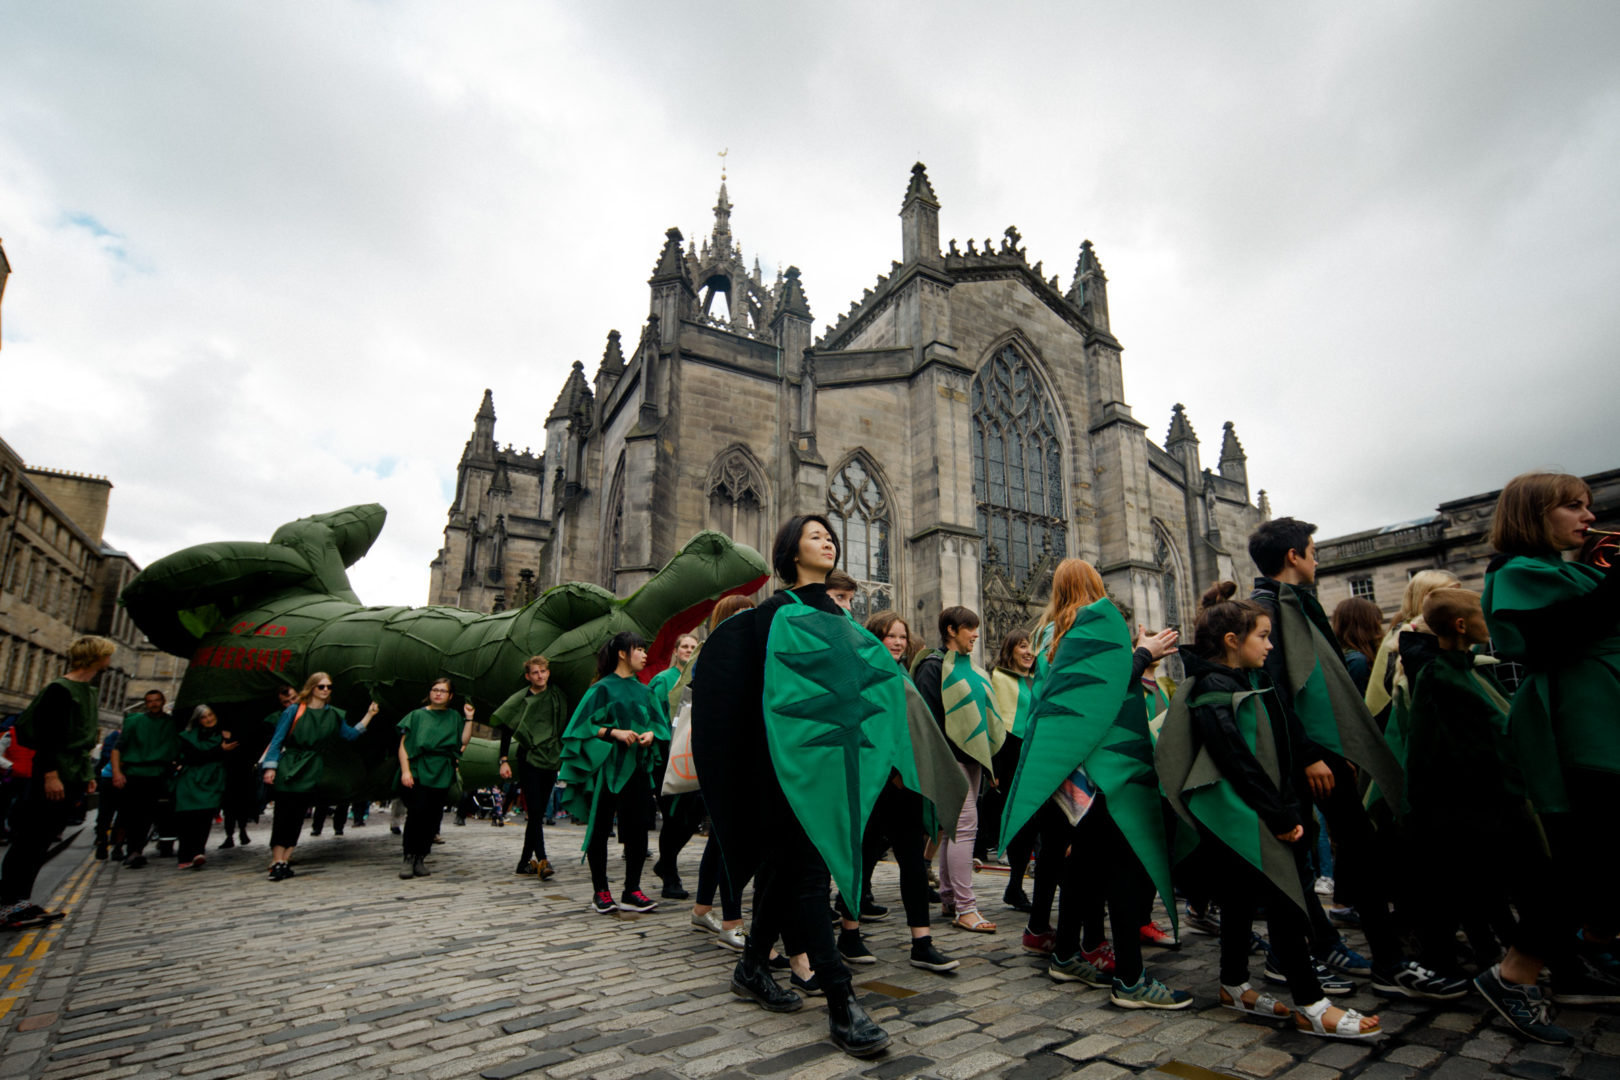 The procession on the Royal Mile